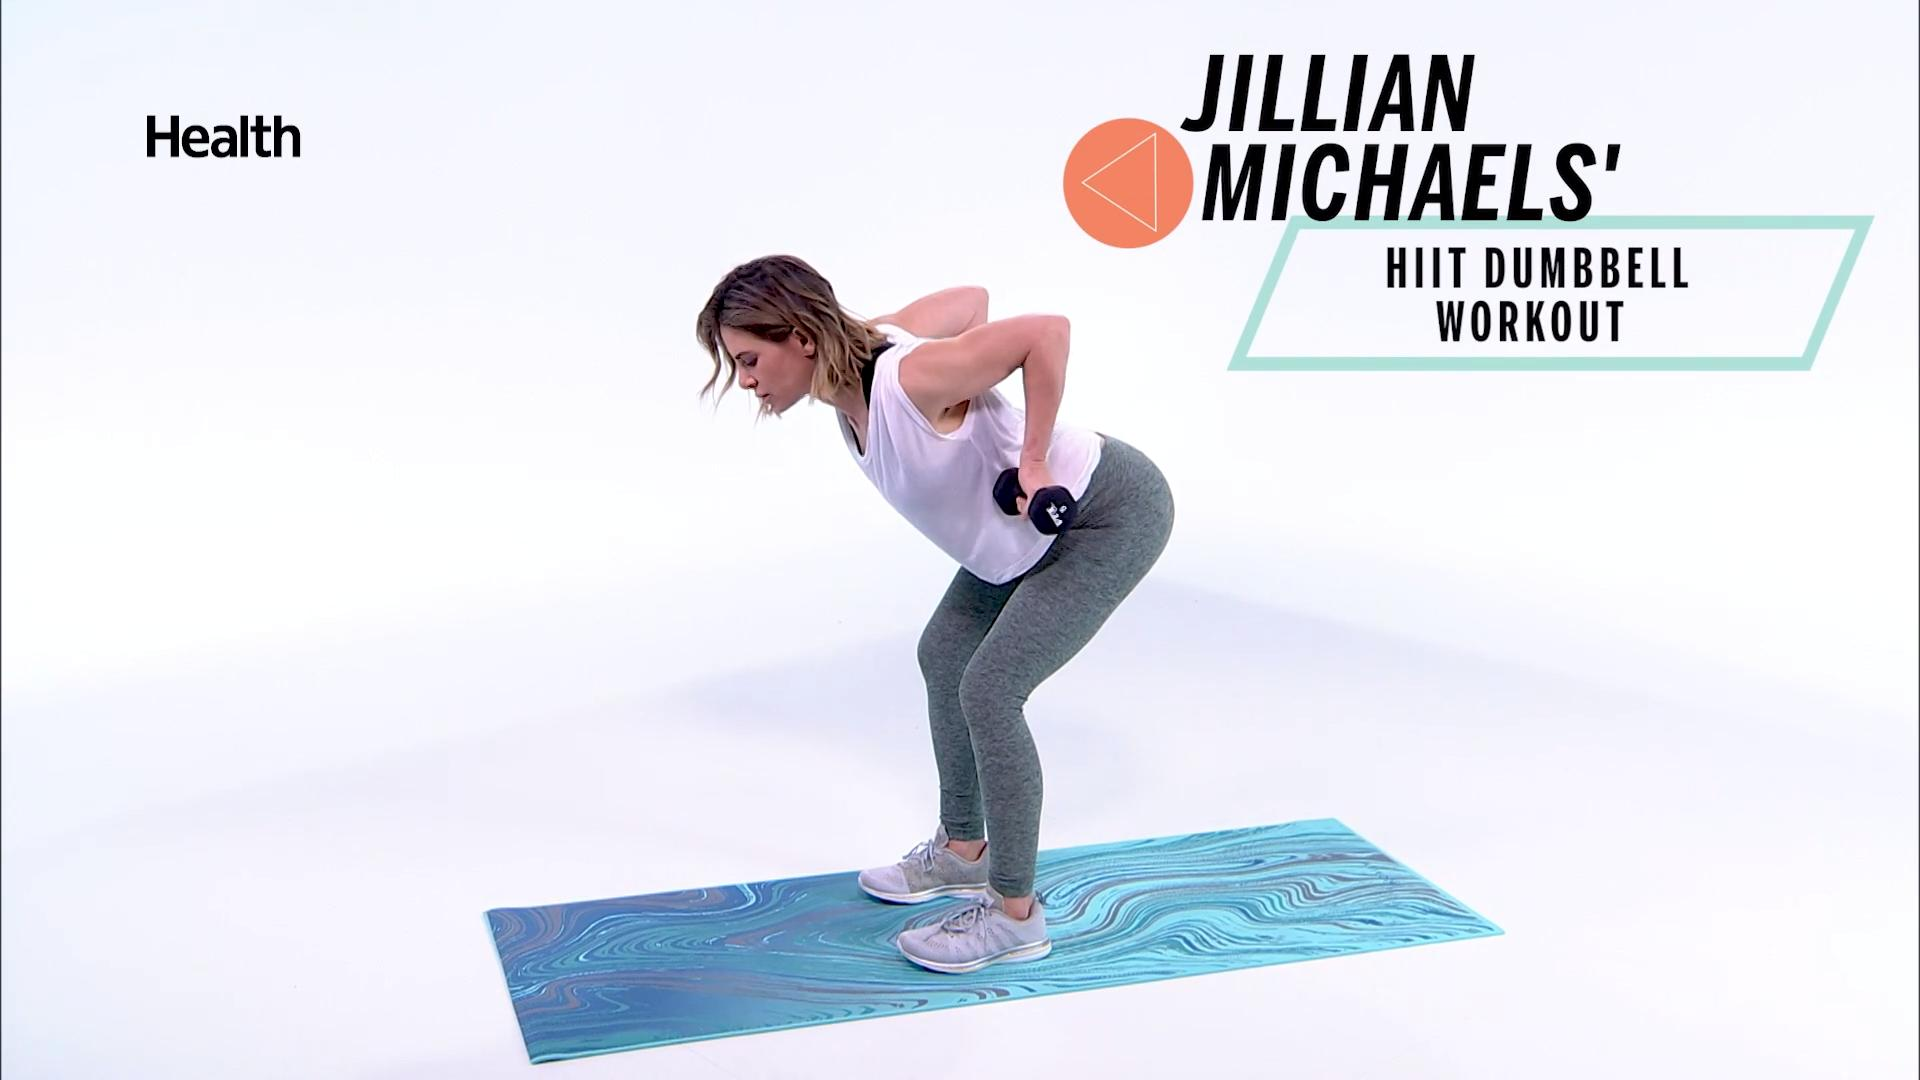 This HIIT Dumbbell Workout From Jillian Michaels Will Tone Your Entire Body